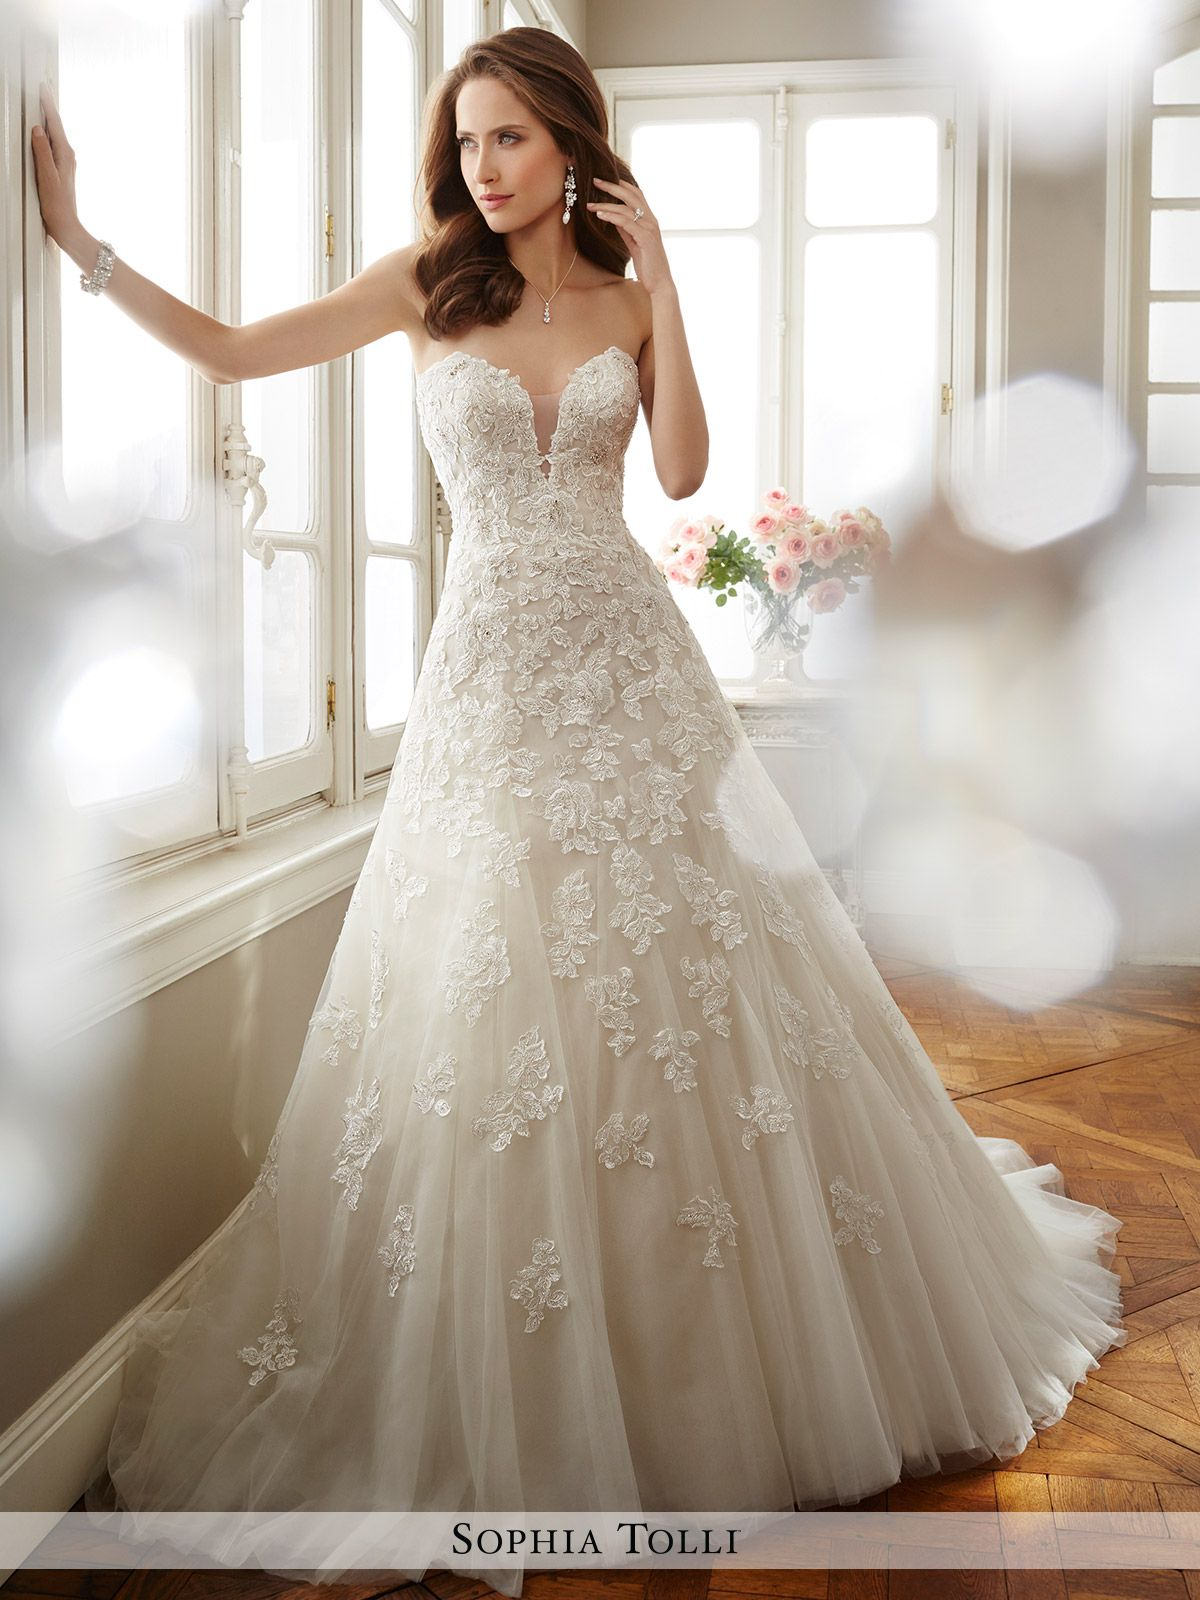 899f0f34a Strapless misty tulle A-line gown with deep plunging sweetheart neckline  and sheer peekaboo,